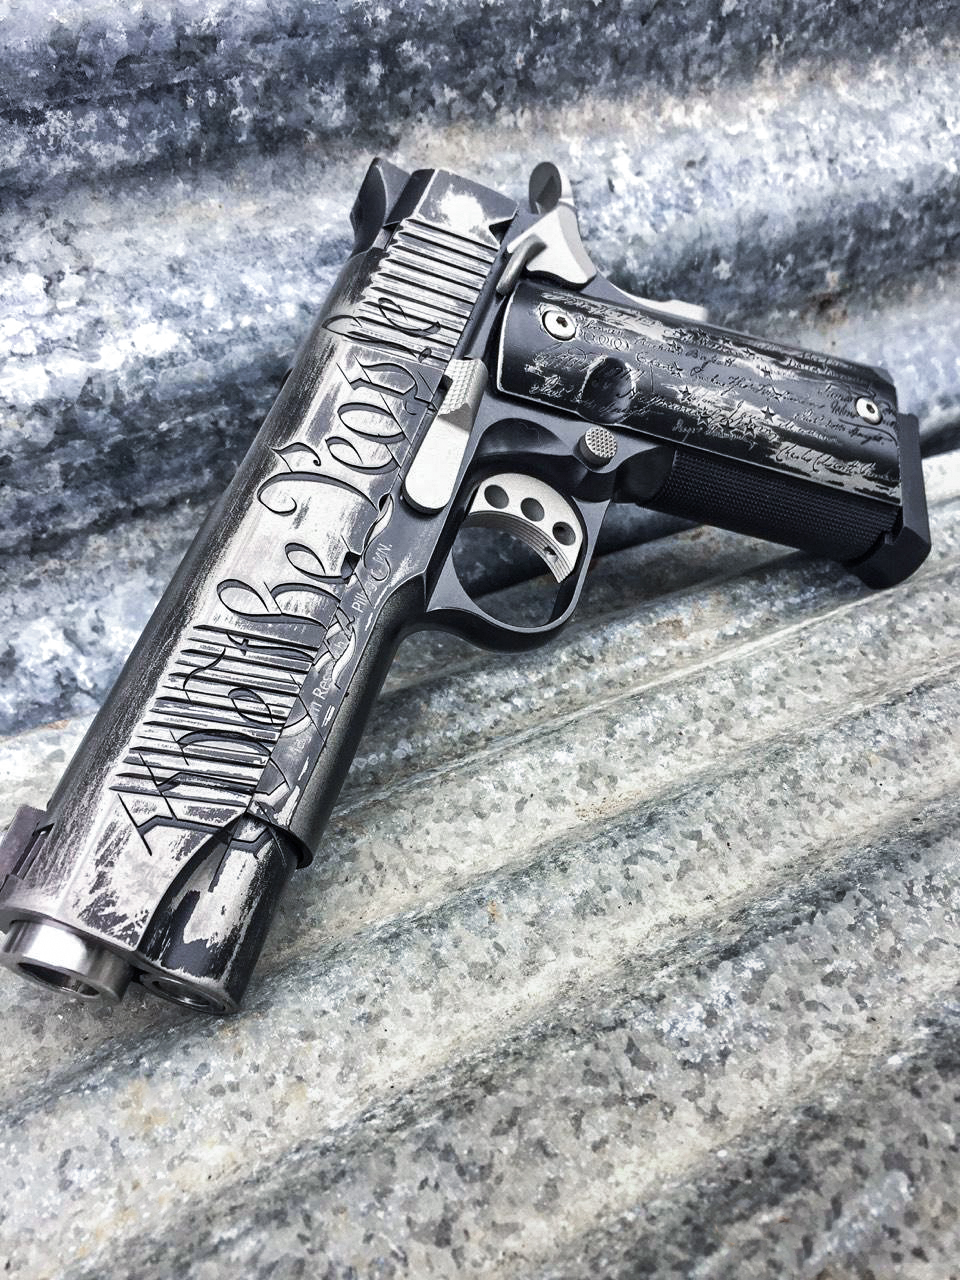 Kahr Firearms Group Partners With Outlaw Ordnance On